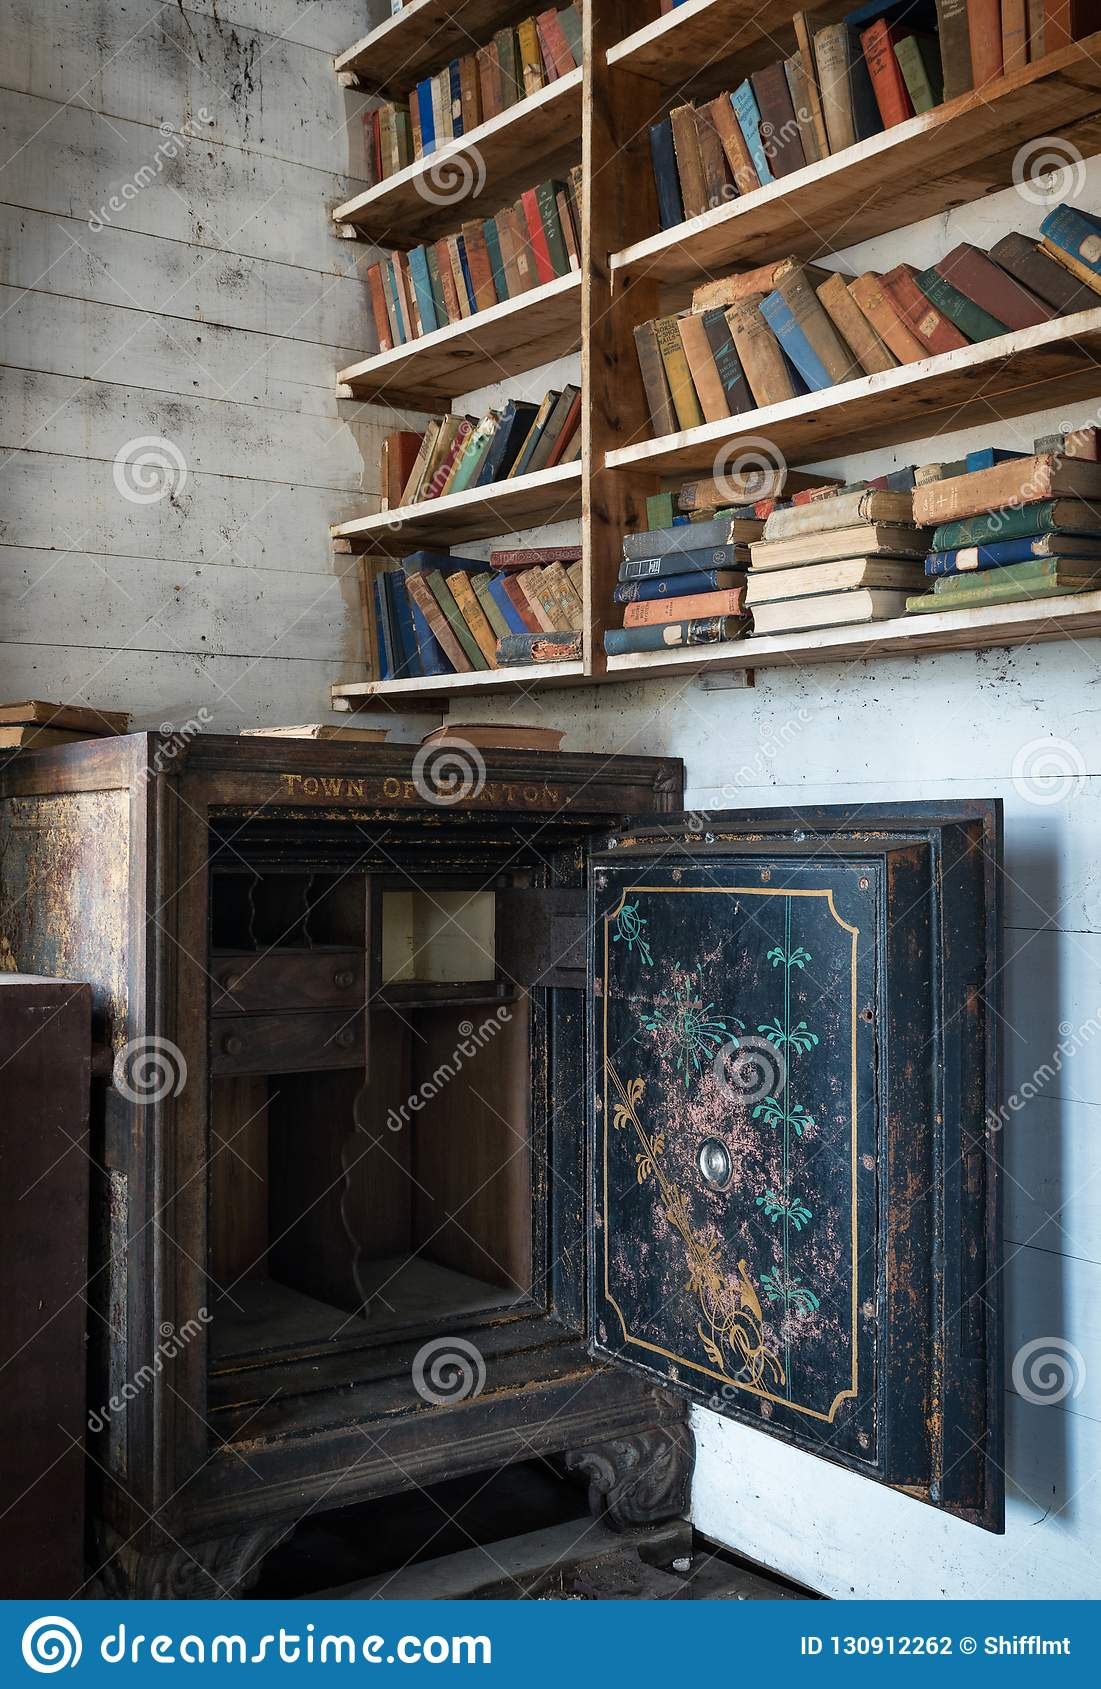 Old Books And A Steel Safe In An Abandoned Schoolhouse Bookshelf